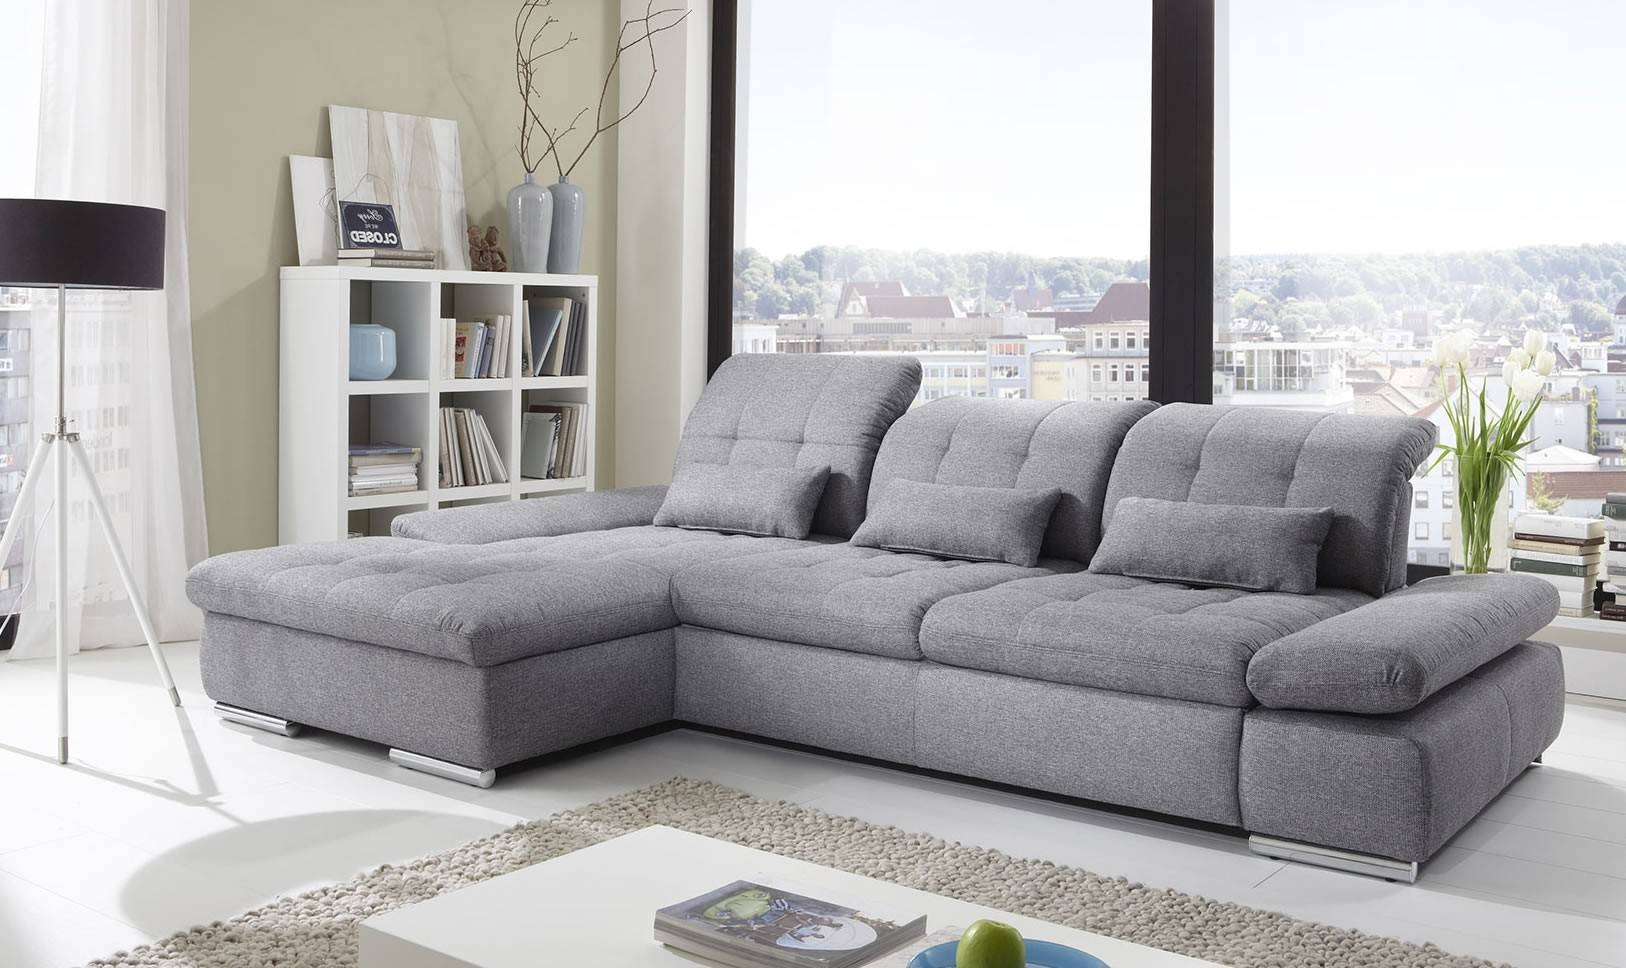 Alpine Sectional Sleeper Sofa, Left Arm Chaise Facing, Black in White Fabric Sofas (Image 1 of 30)